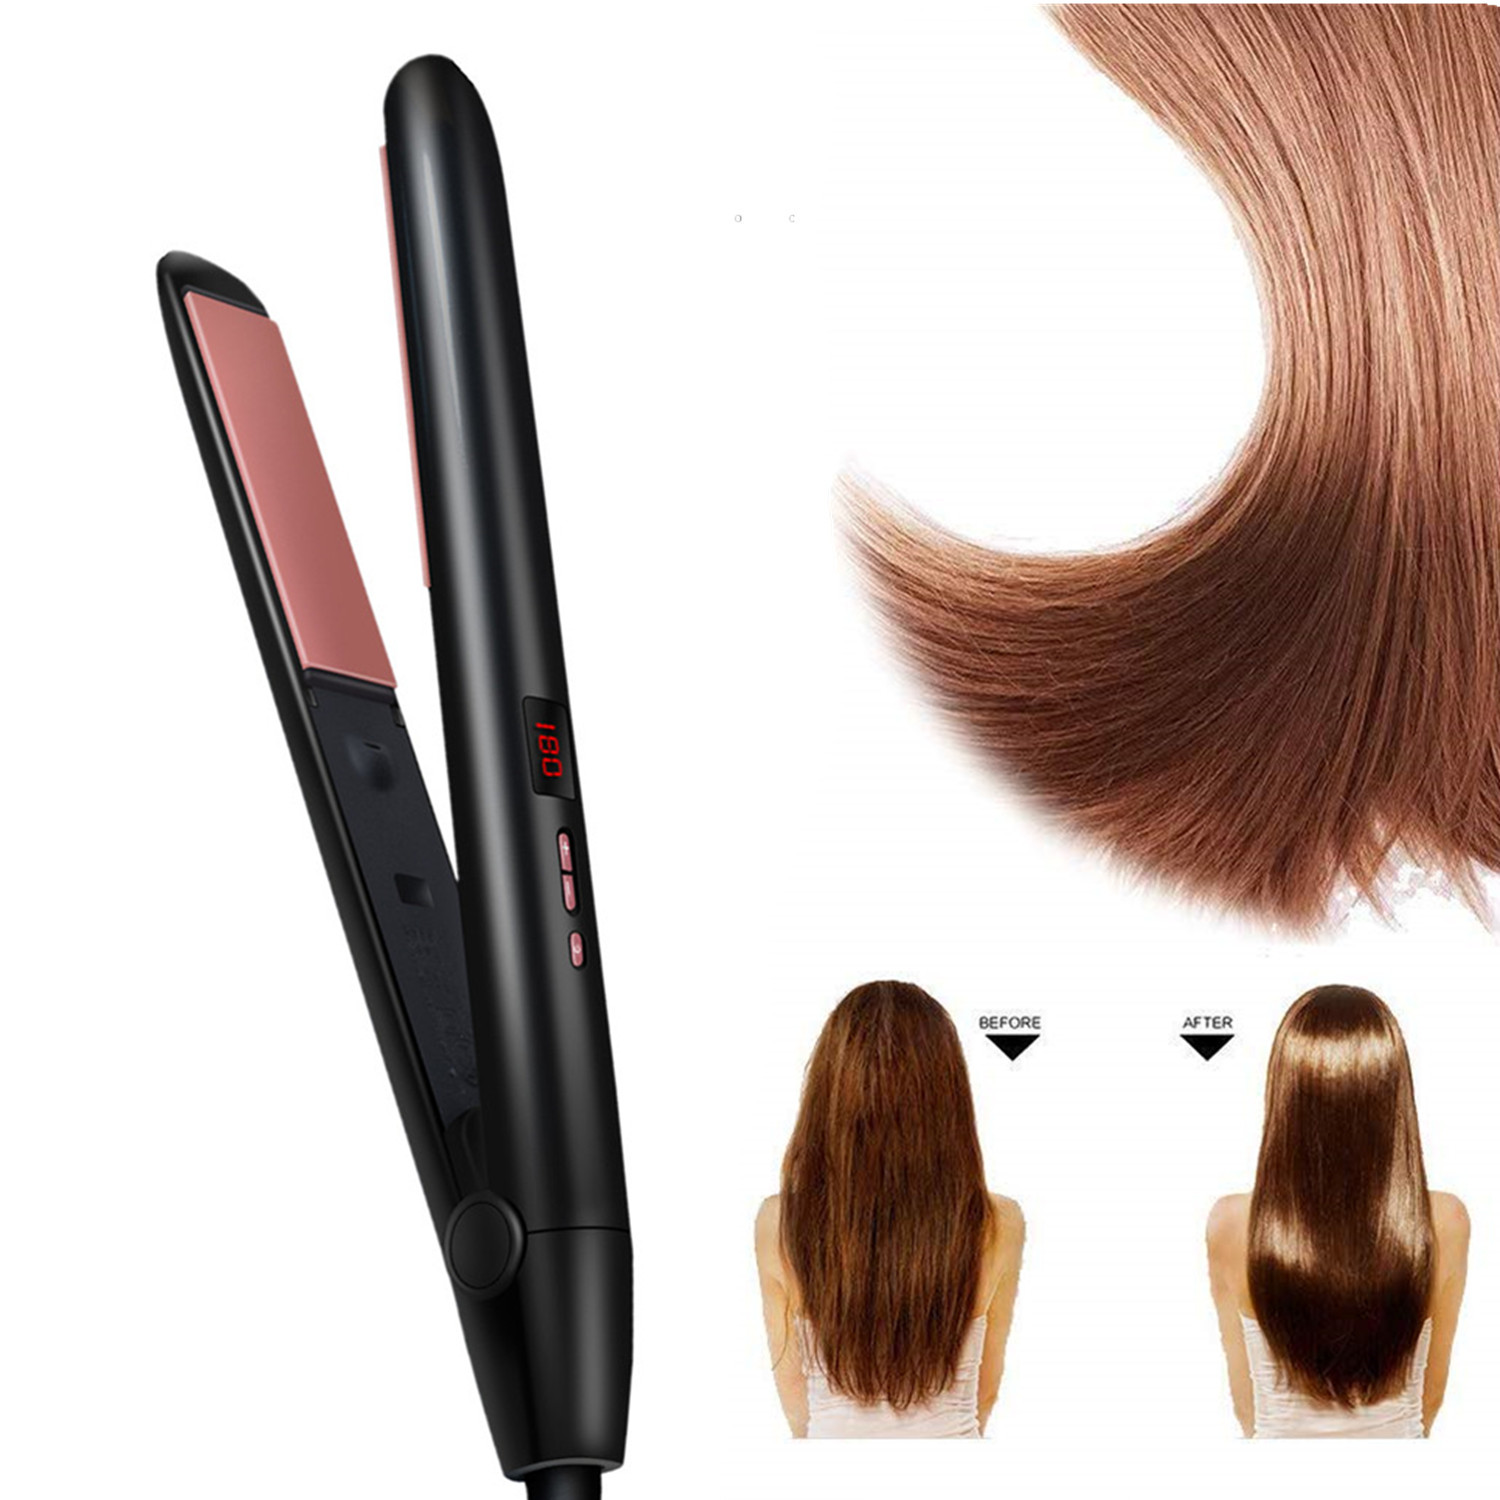 Hair Straightener Curler Hair Flat Iron Corrugation <font><b>LED</b></font> Display Negative Ion Infrared Professional Hair Straighting Curling Iron image